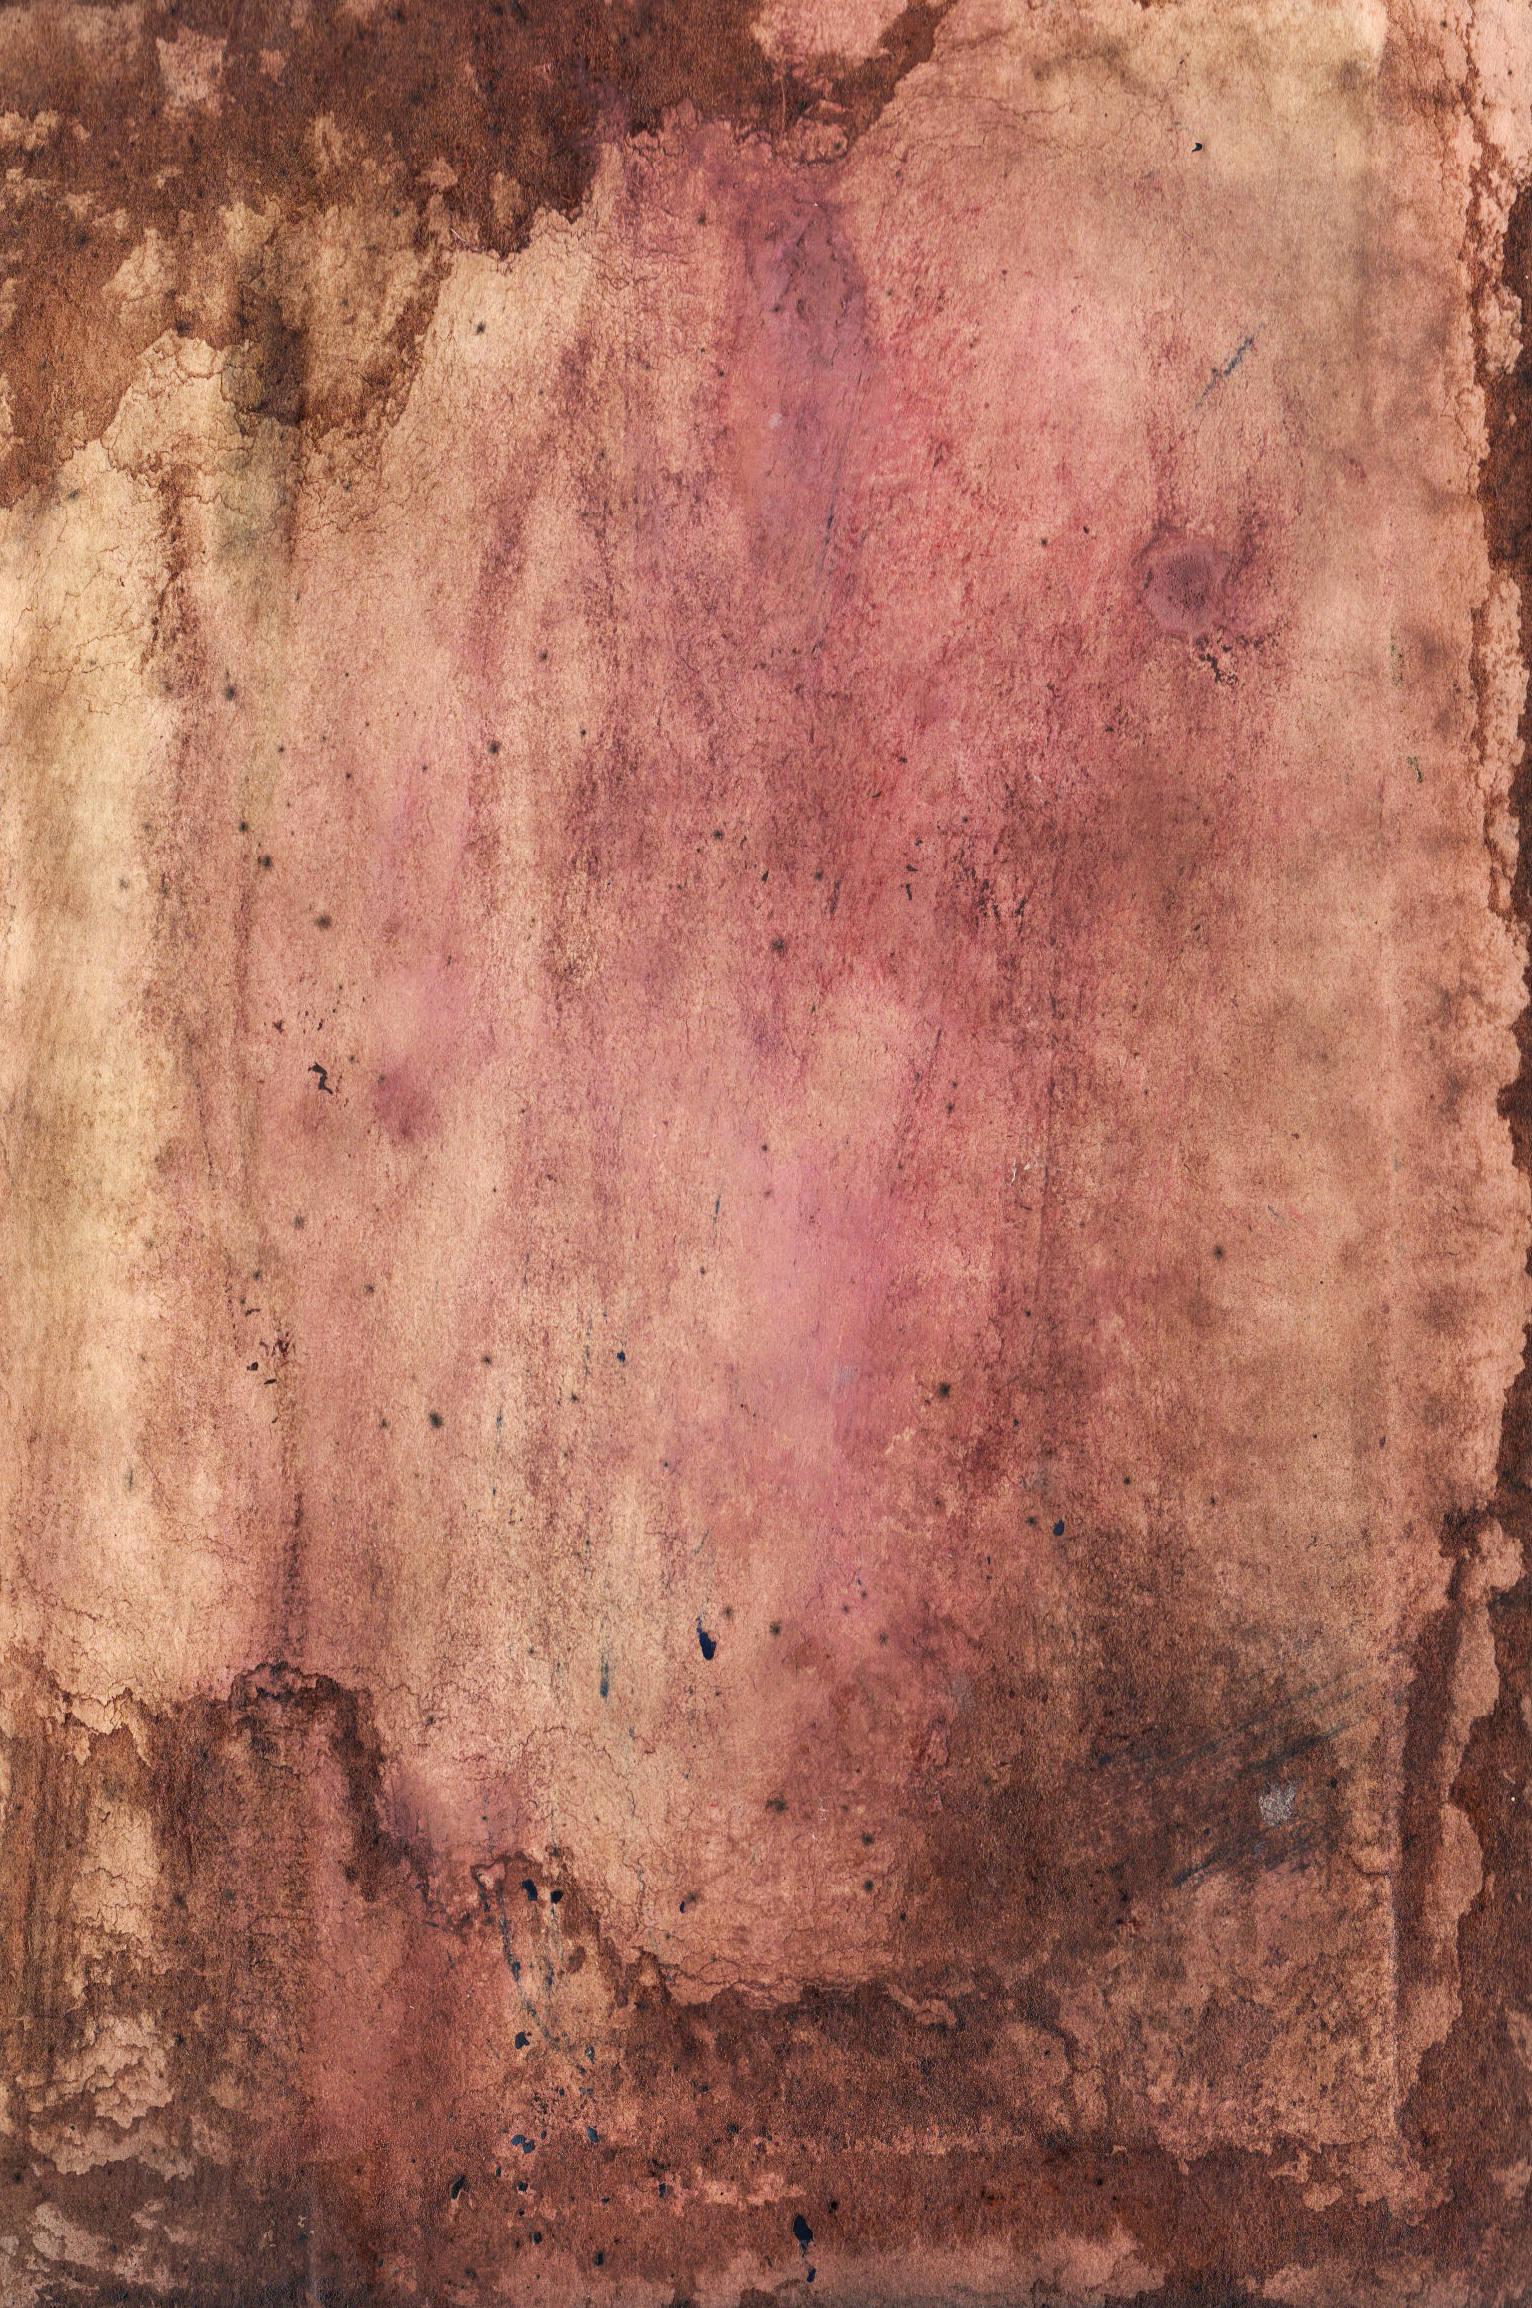 Free High Resolution Textures - gallery - vpaper14 | •Digi Editing ...